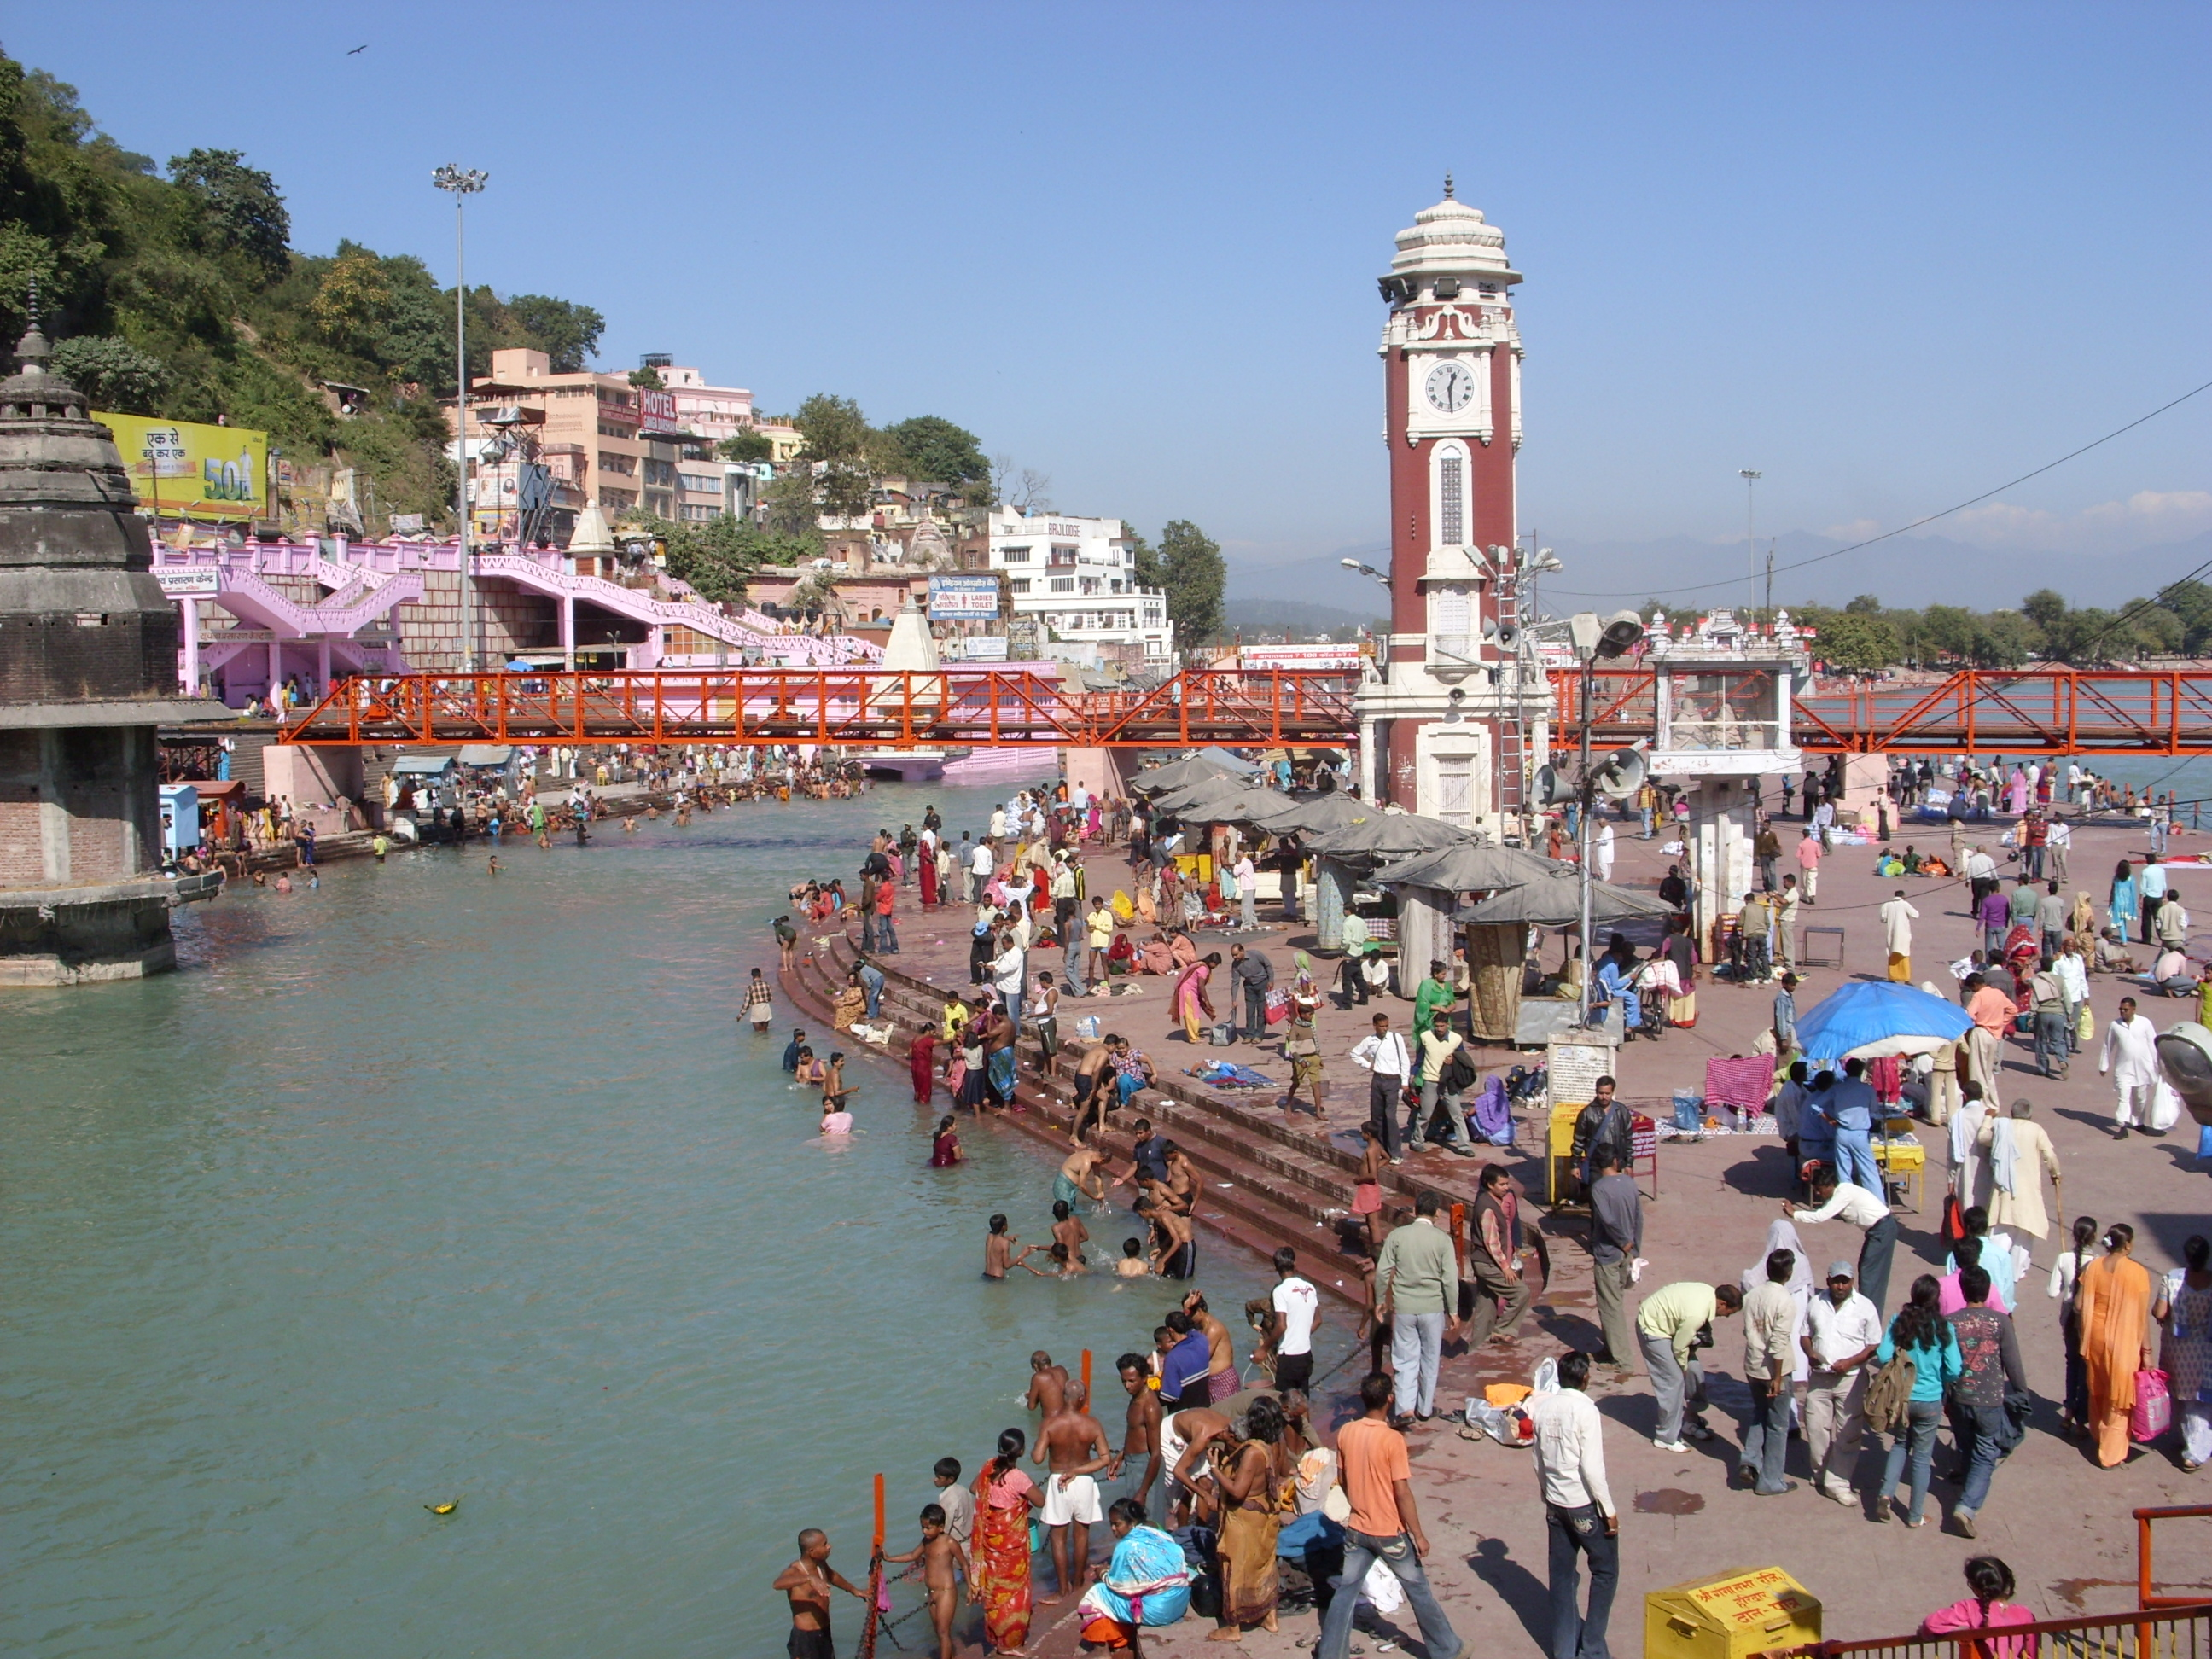 The Black and White pages of Haridwar  by Dr. Ramesh C Raina